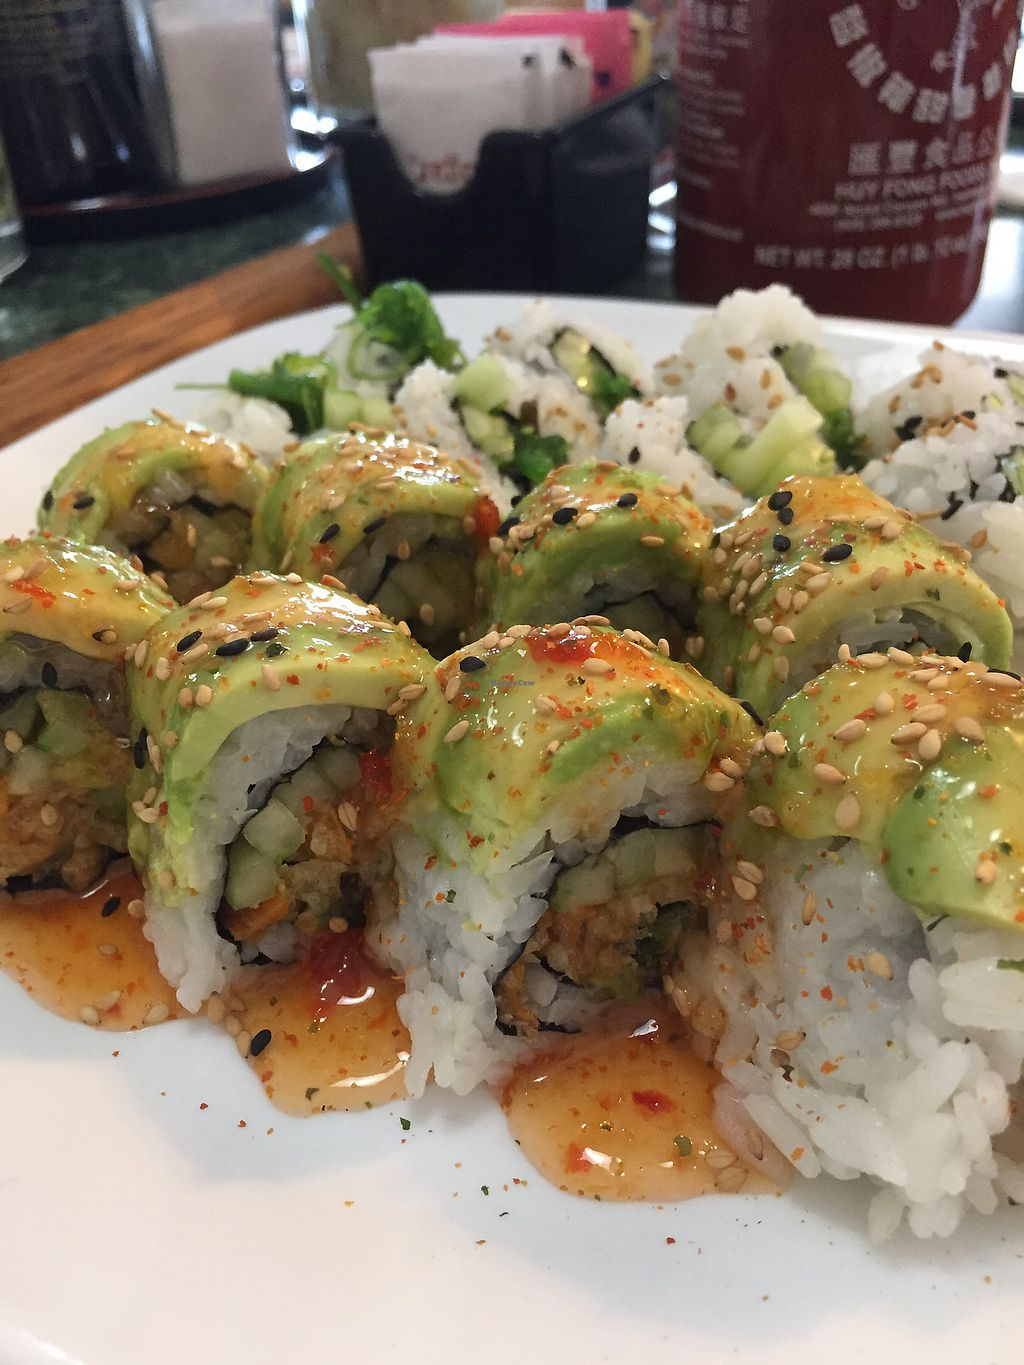 """Photo of Momiji  by <a href=""""/members/profile/happycowgirl"""">happycowgirl</a> <br/>Veg Head sushi roll <br/> December 27, 2017  - <a href='/contact/abuse/image/70314/339740'>Report</a>"""